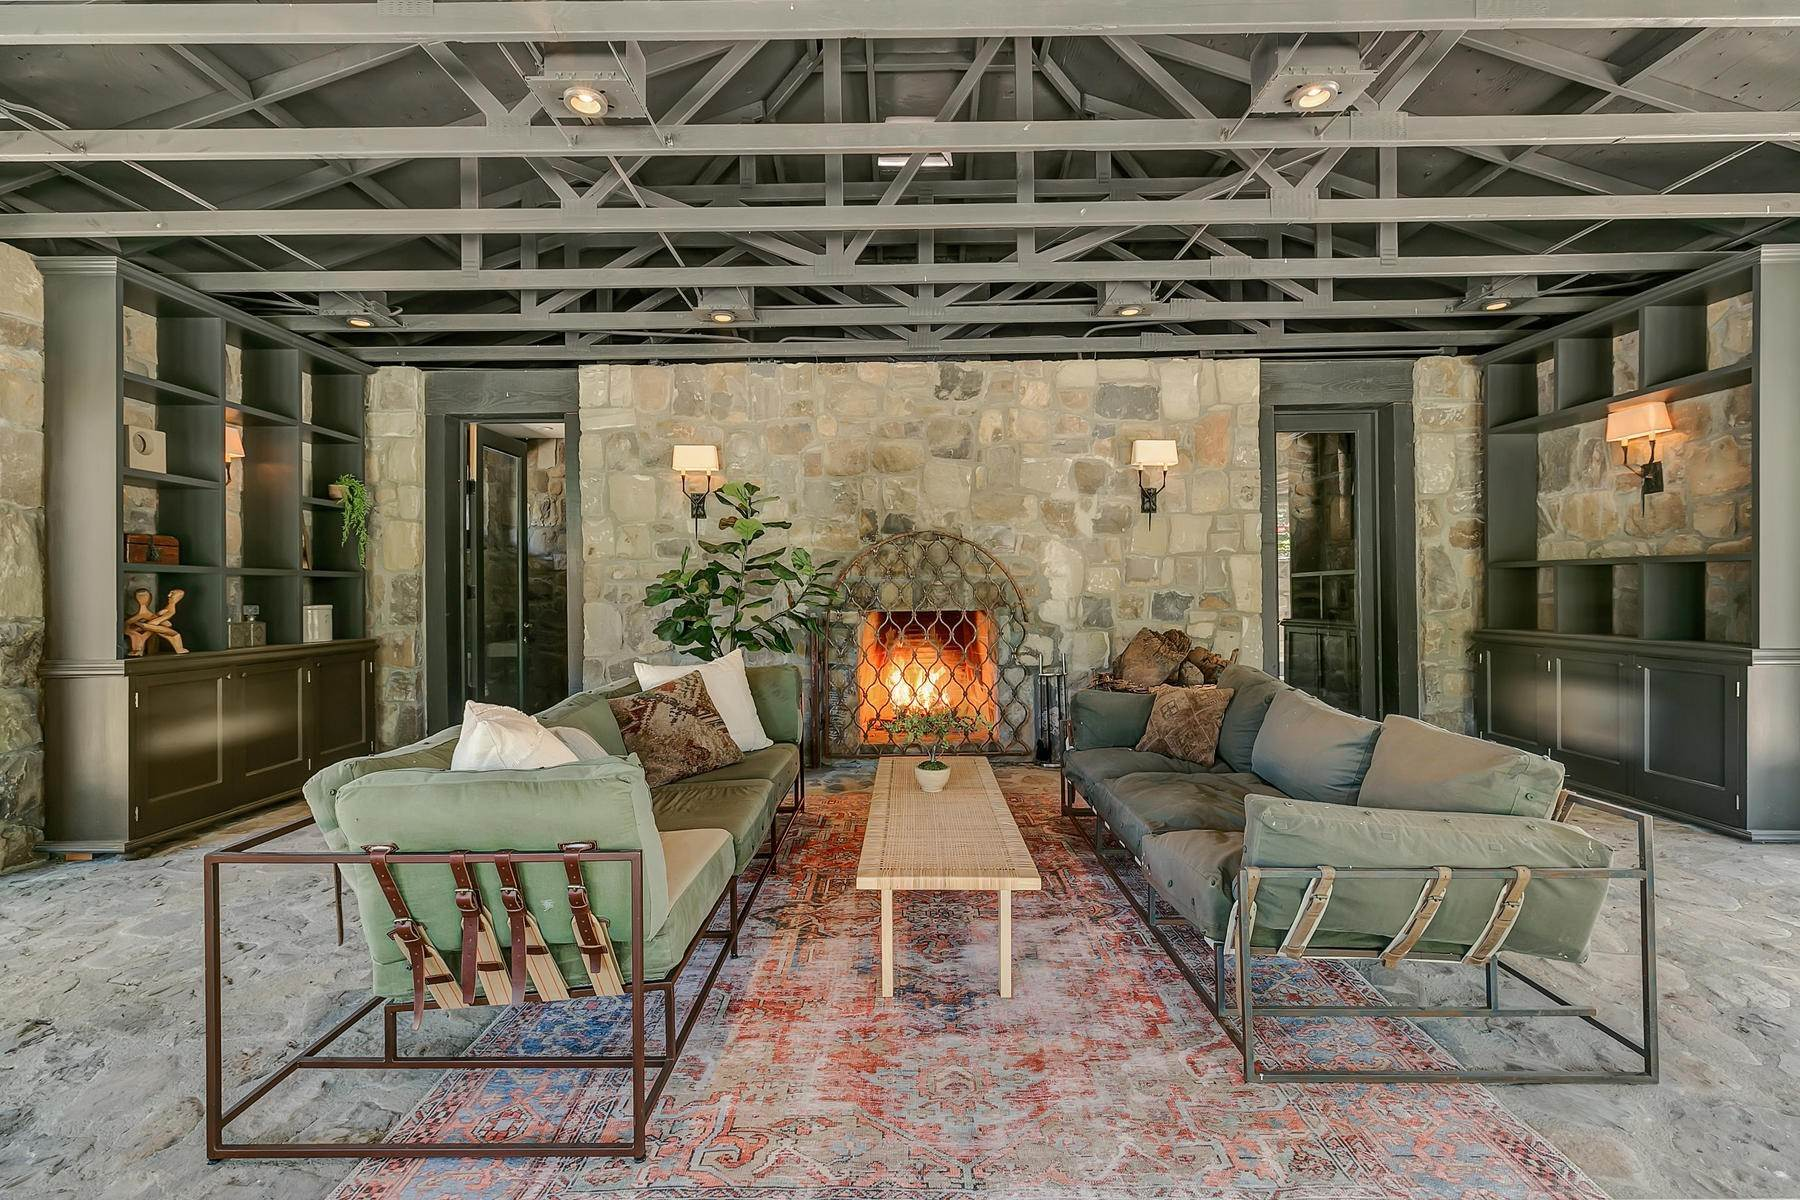 Property en 4424 Thacher Road Ojai, California 93023 Estados Unidos